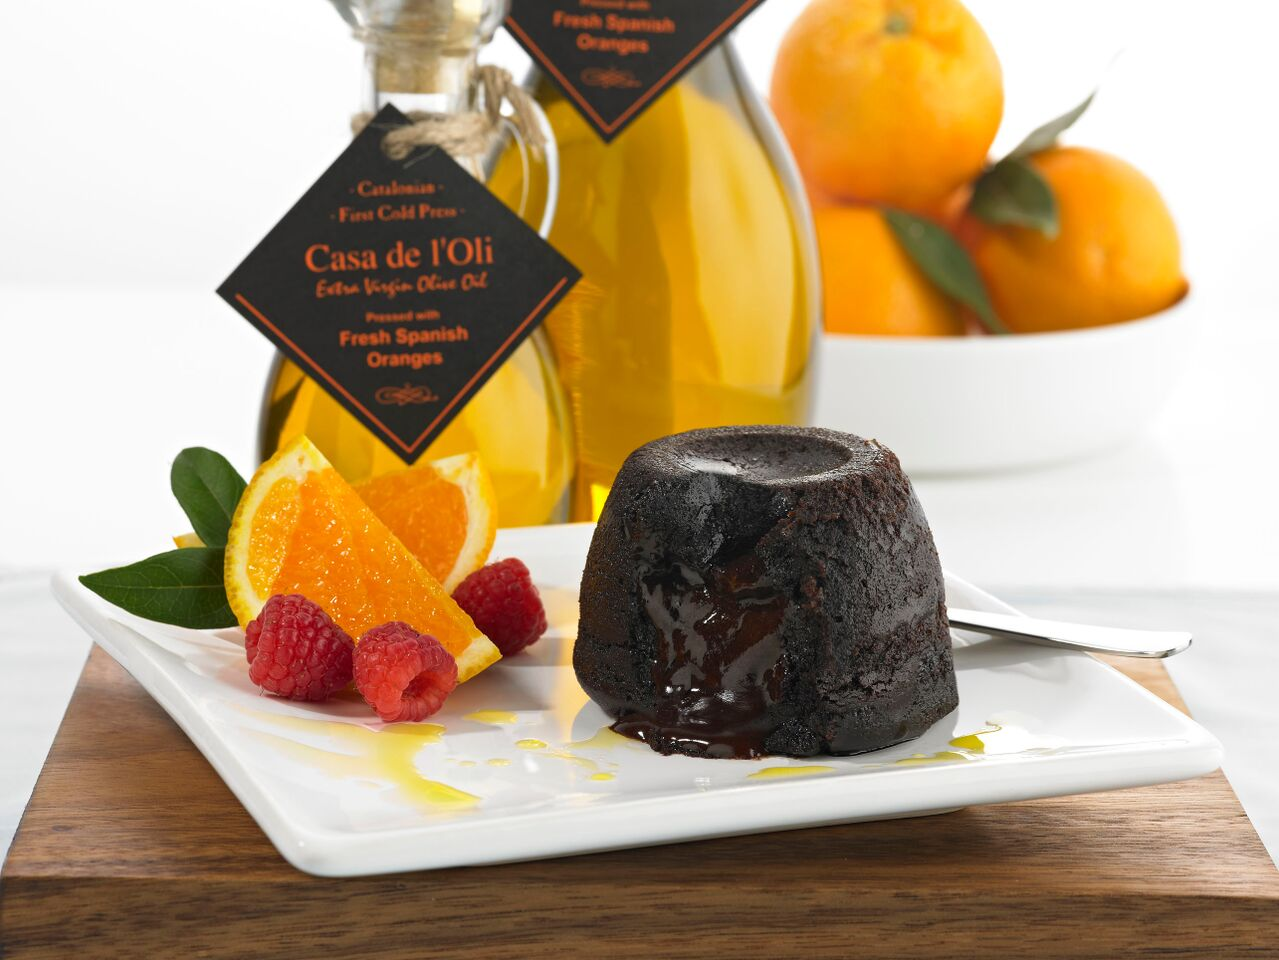 Drizzle Orange Olive Oil over chocolate desserts for rich, delicious & healthy flourish